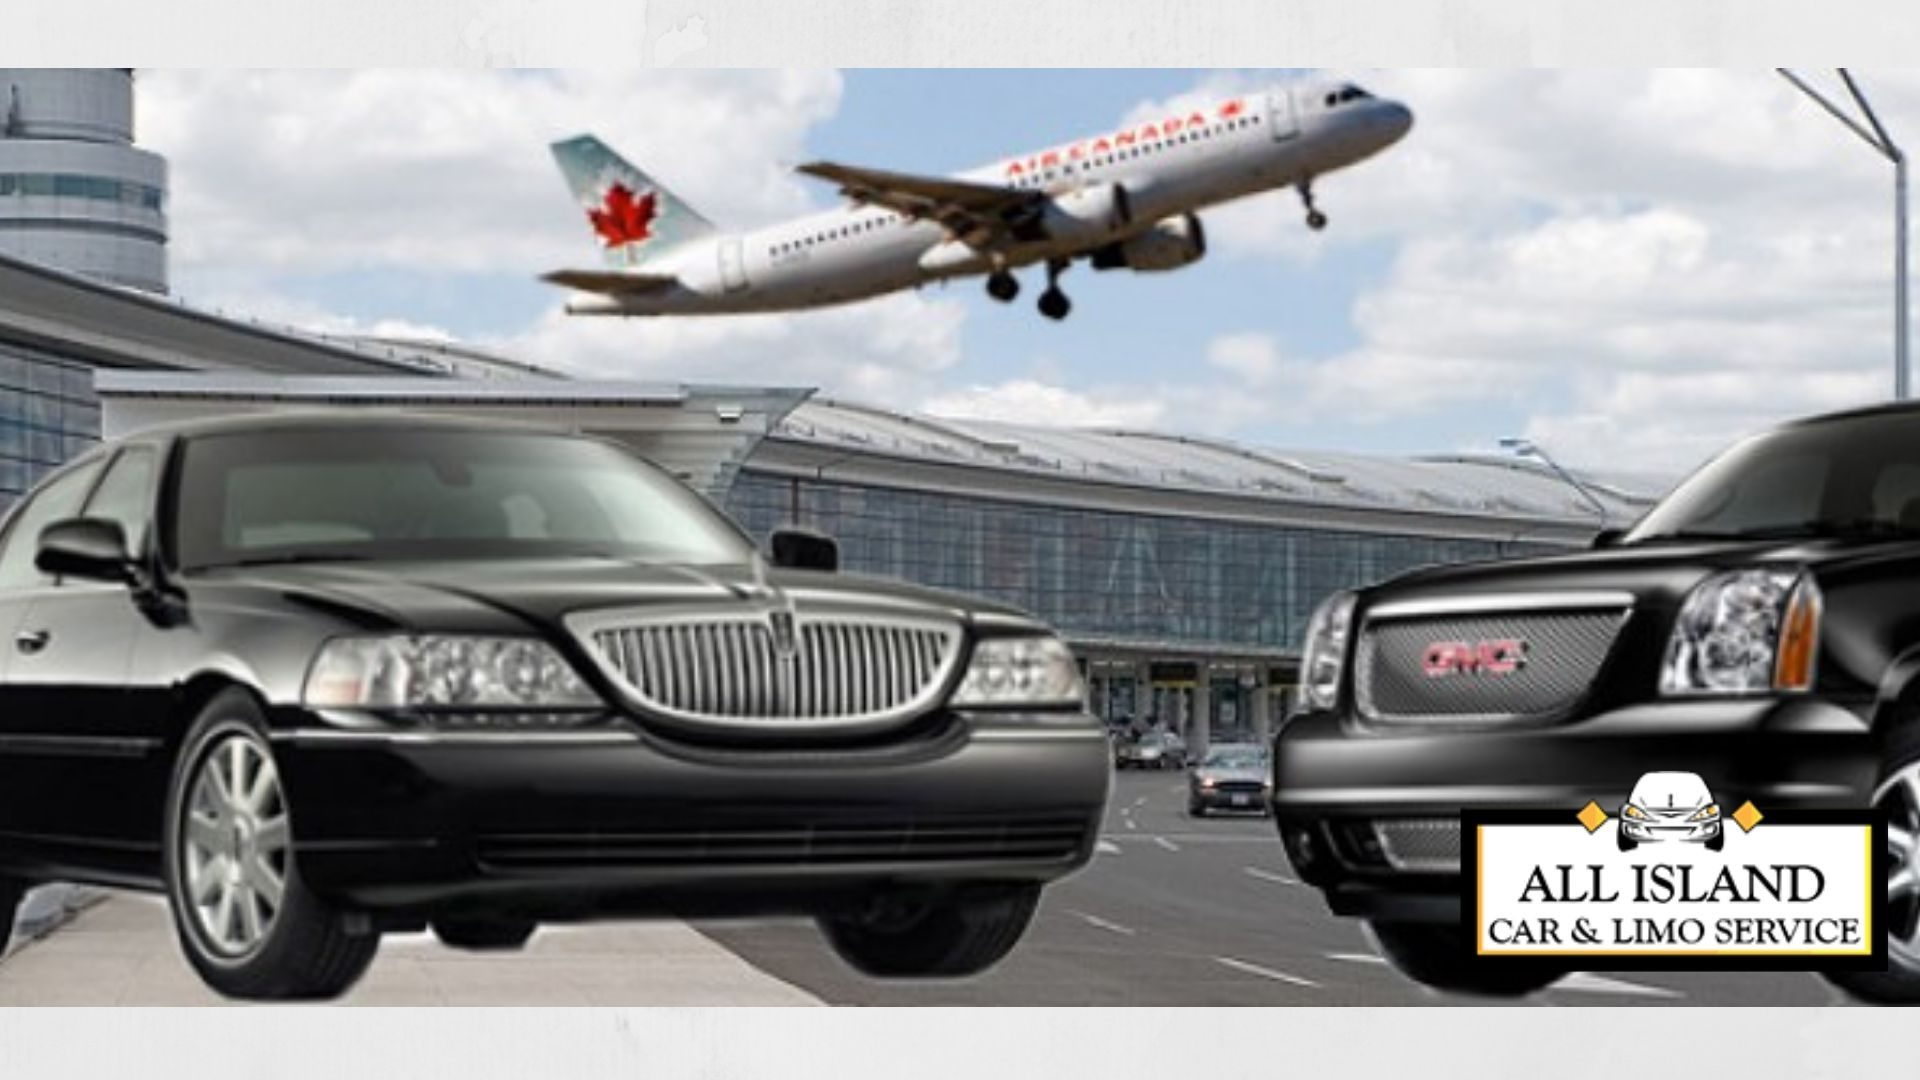 If A Limo Service To Lga Airport Is What You Are Looking For Then